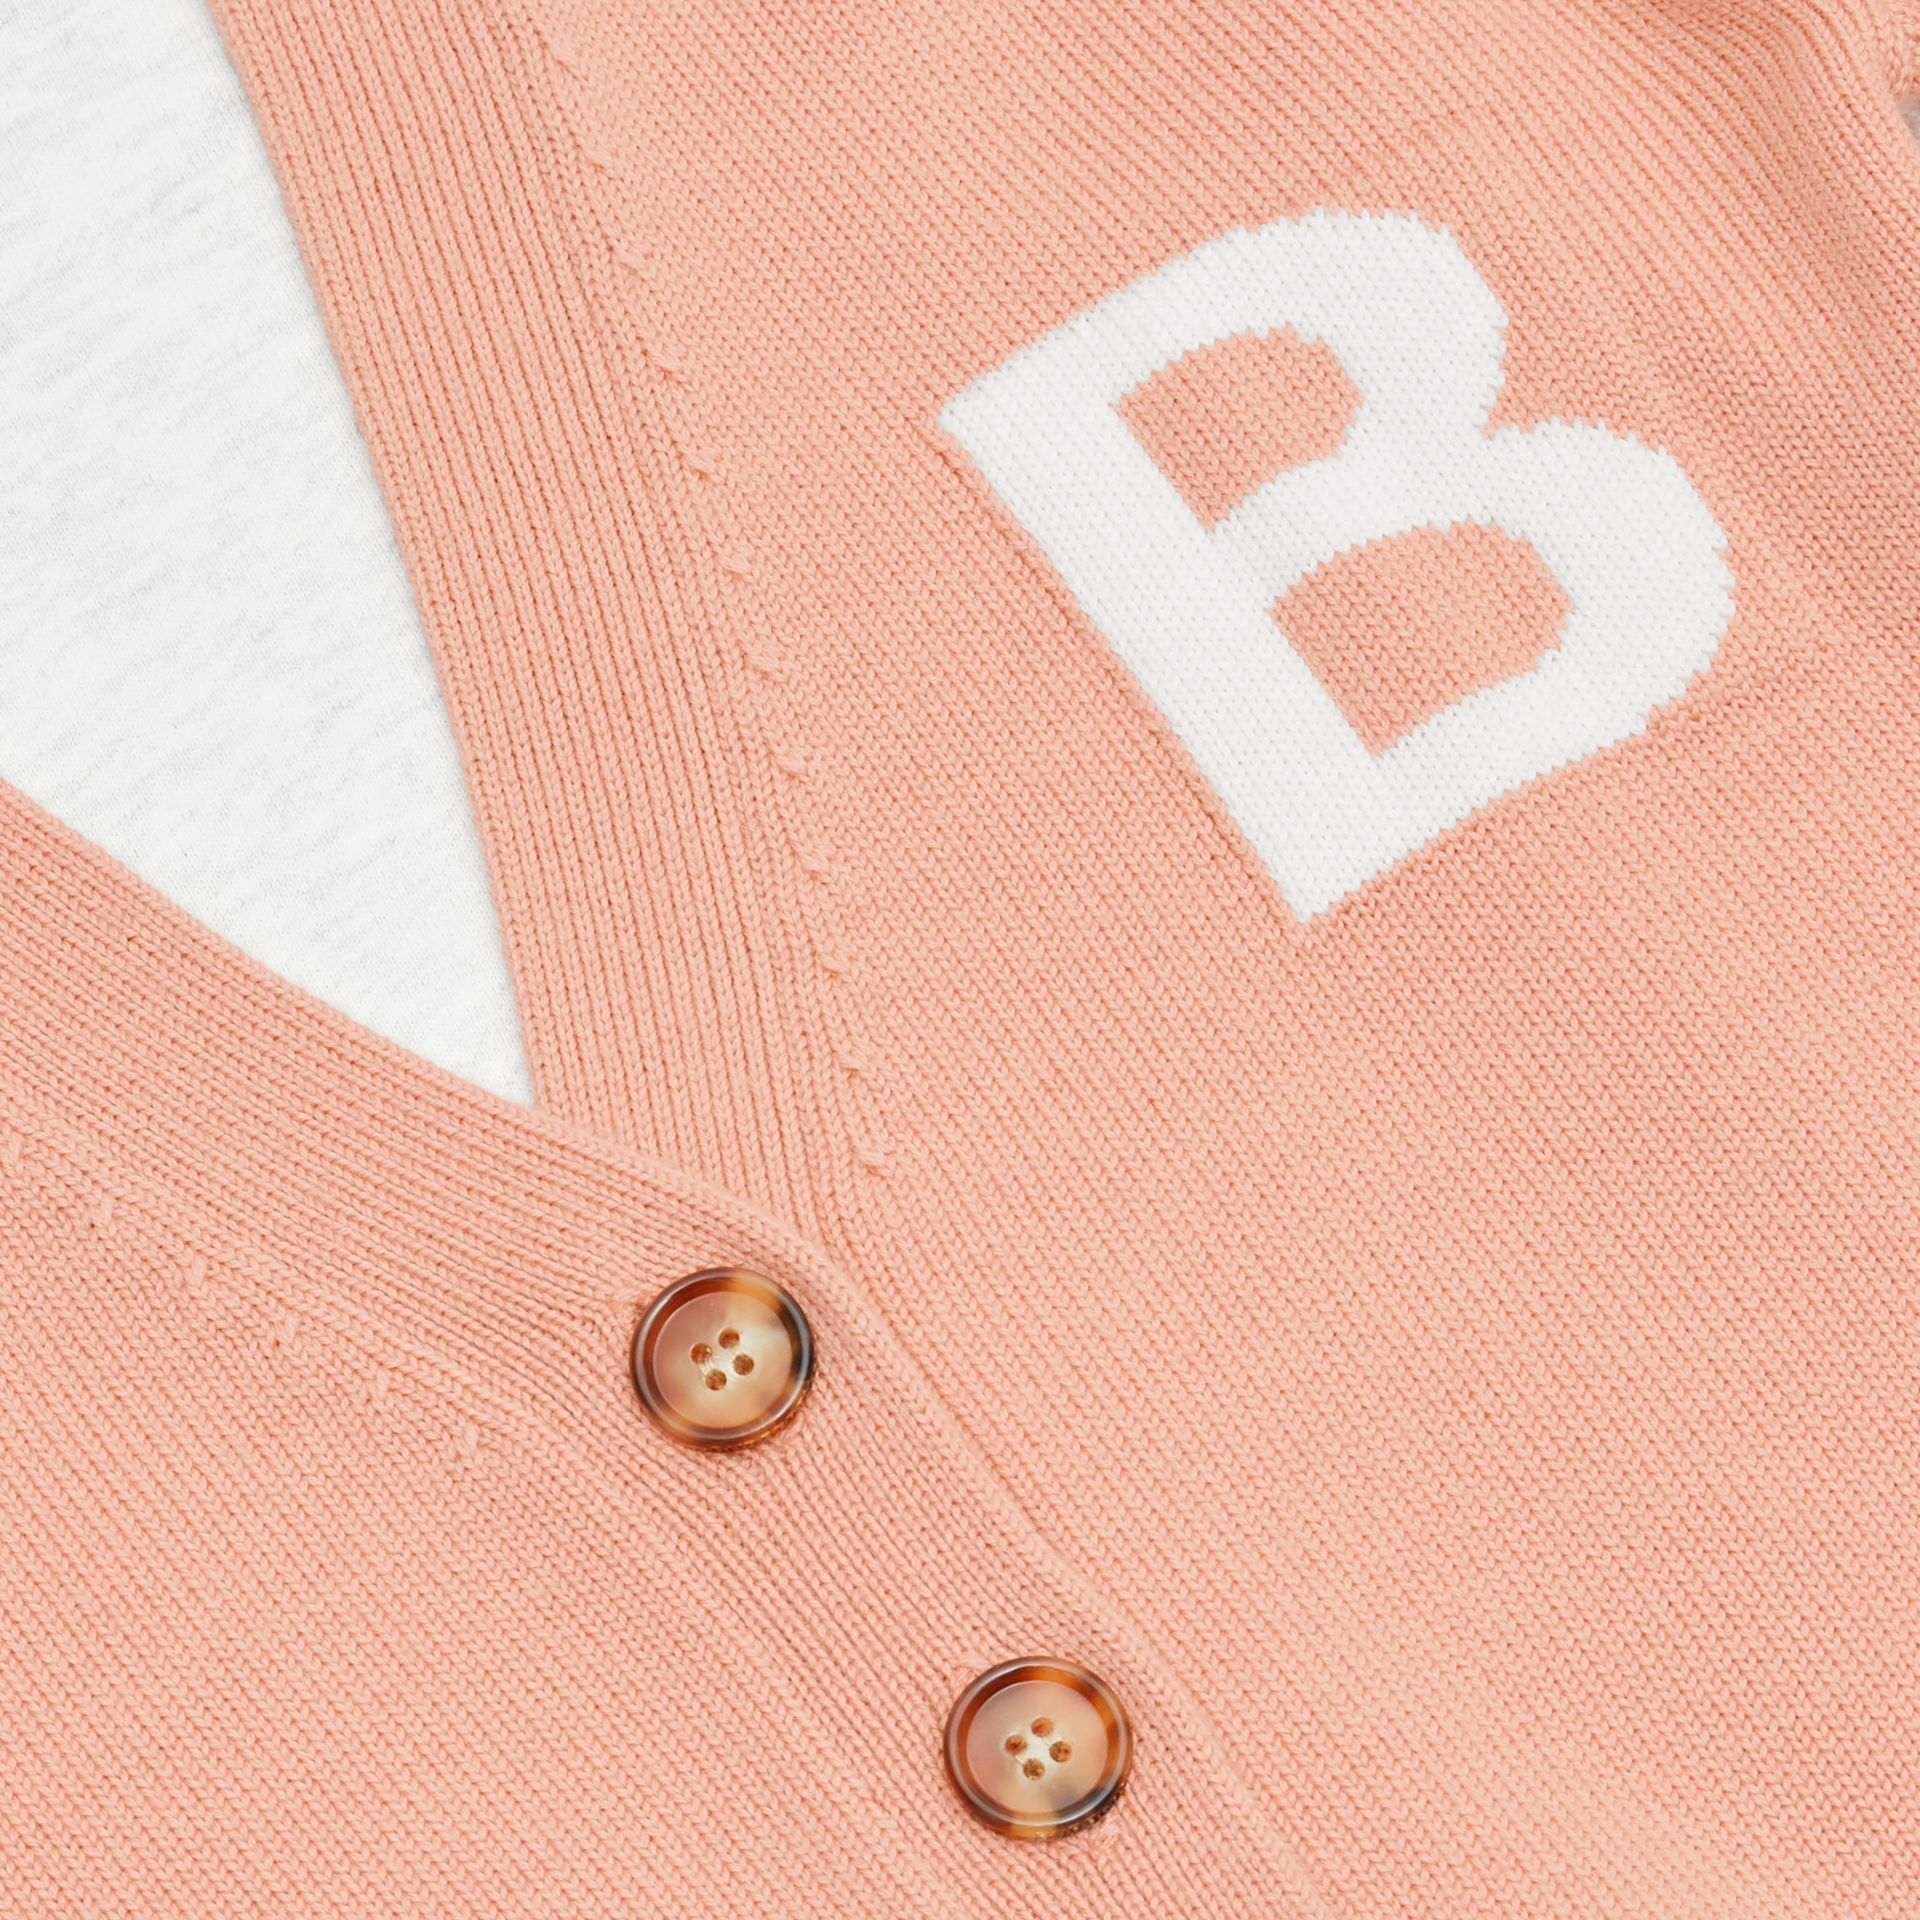 B Motif Merino Wool Jacquard Cardigan in Peach - Girl | Burberry - gallery image 1